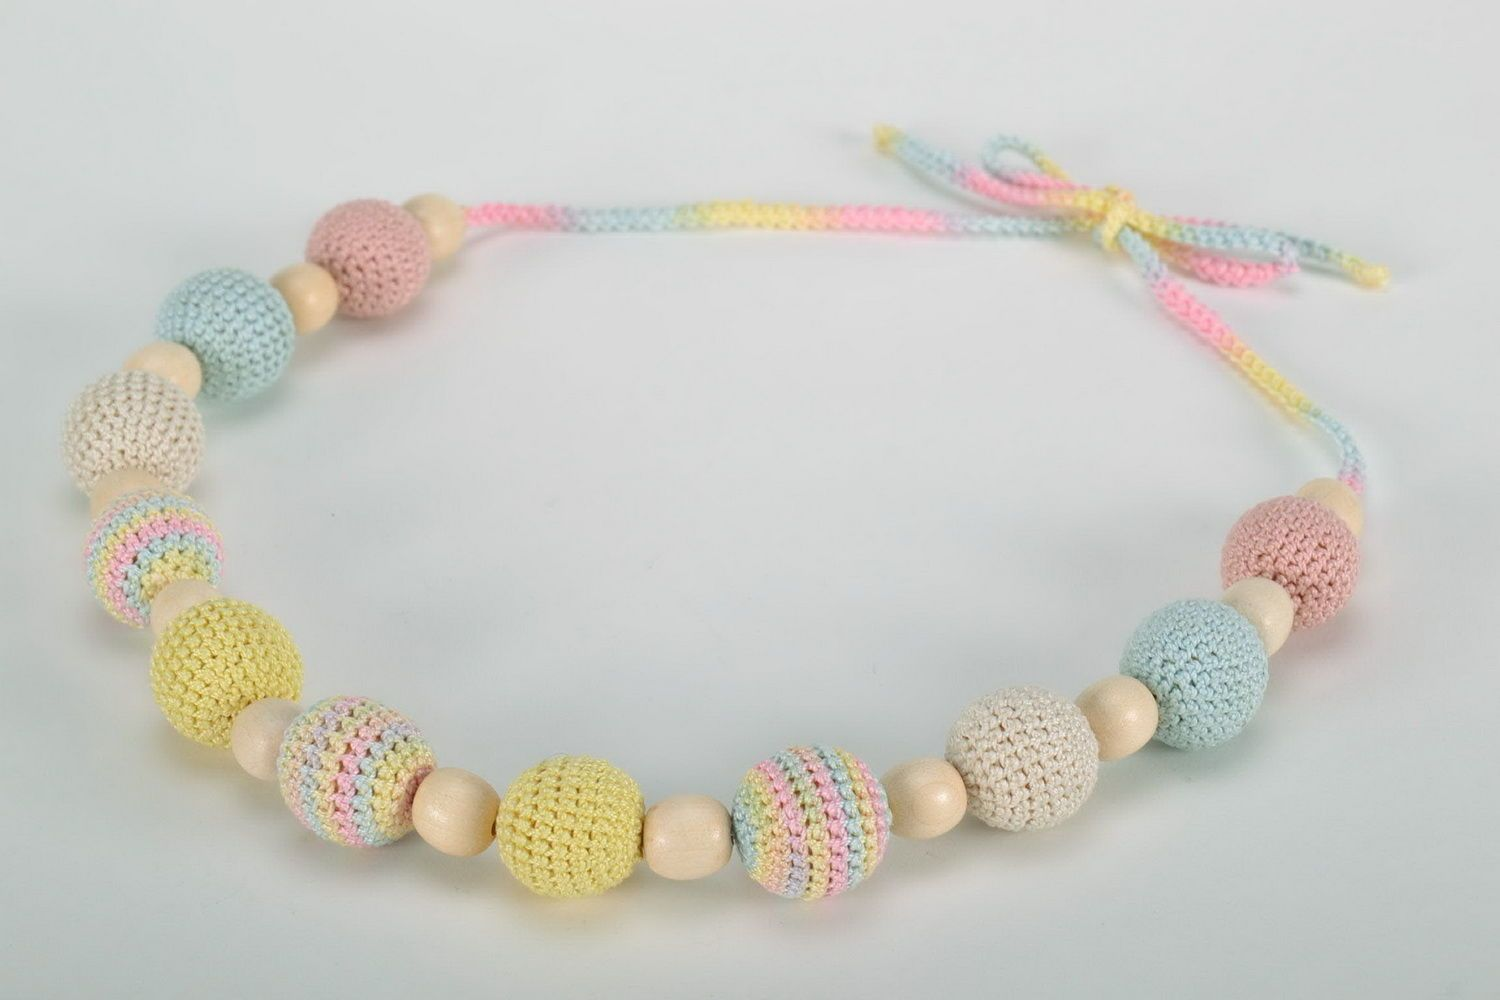 fabric jewelry Sling beads in pastel tones - MADEheart.com